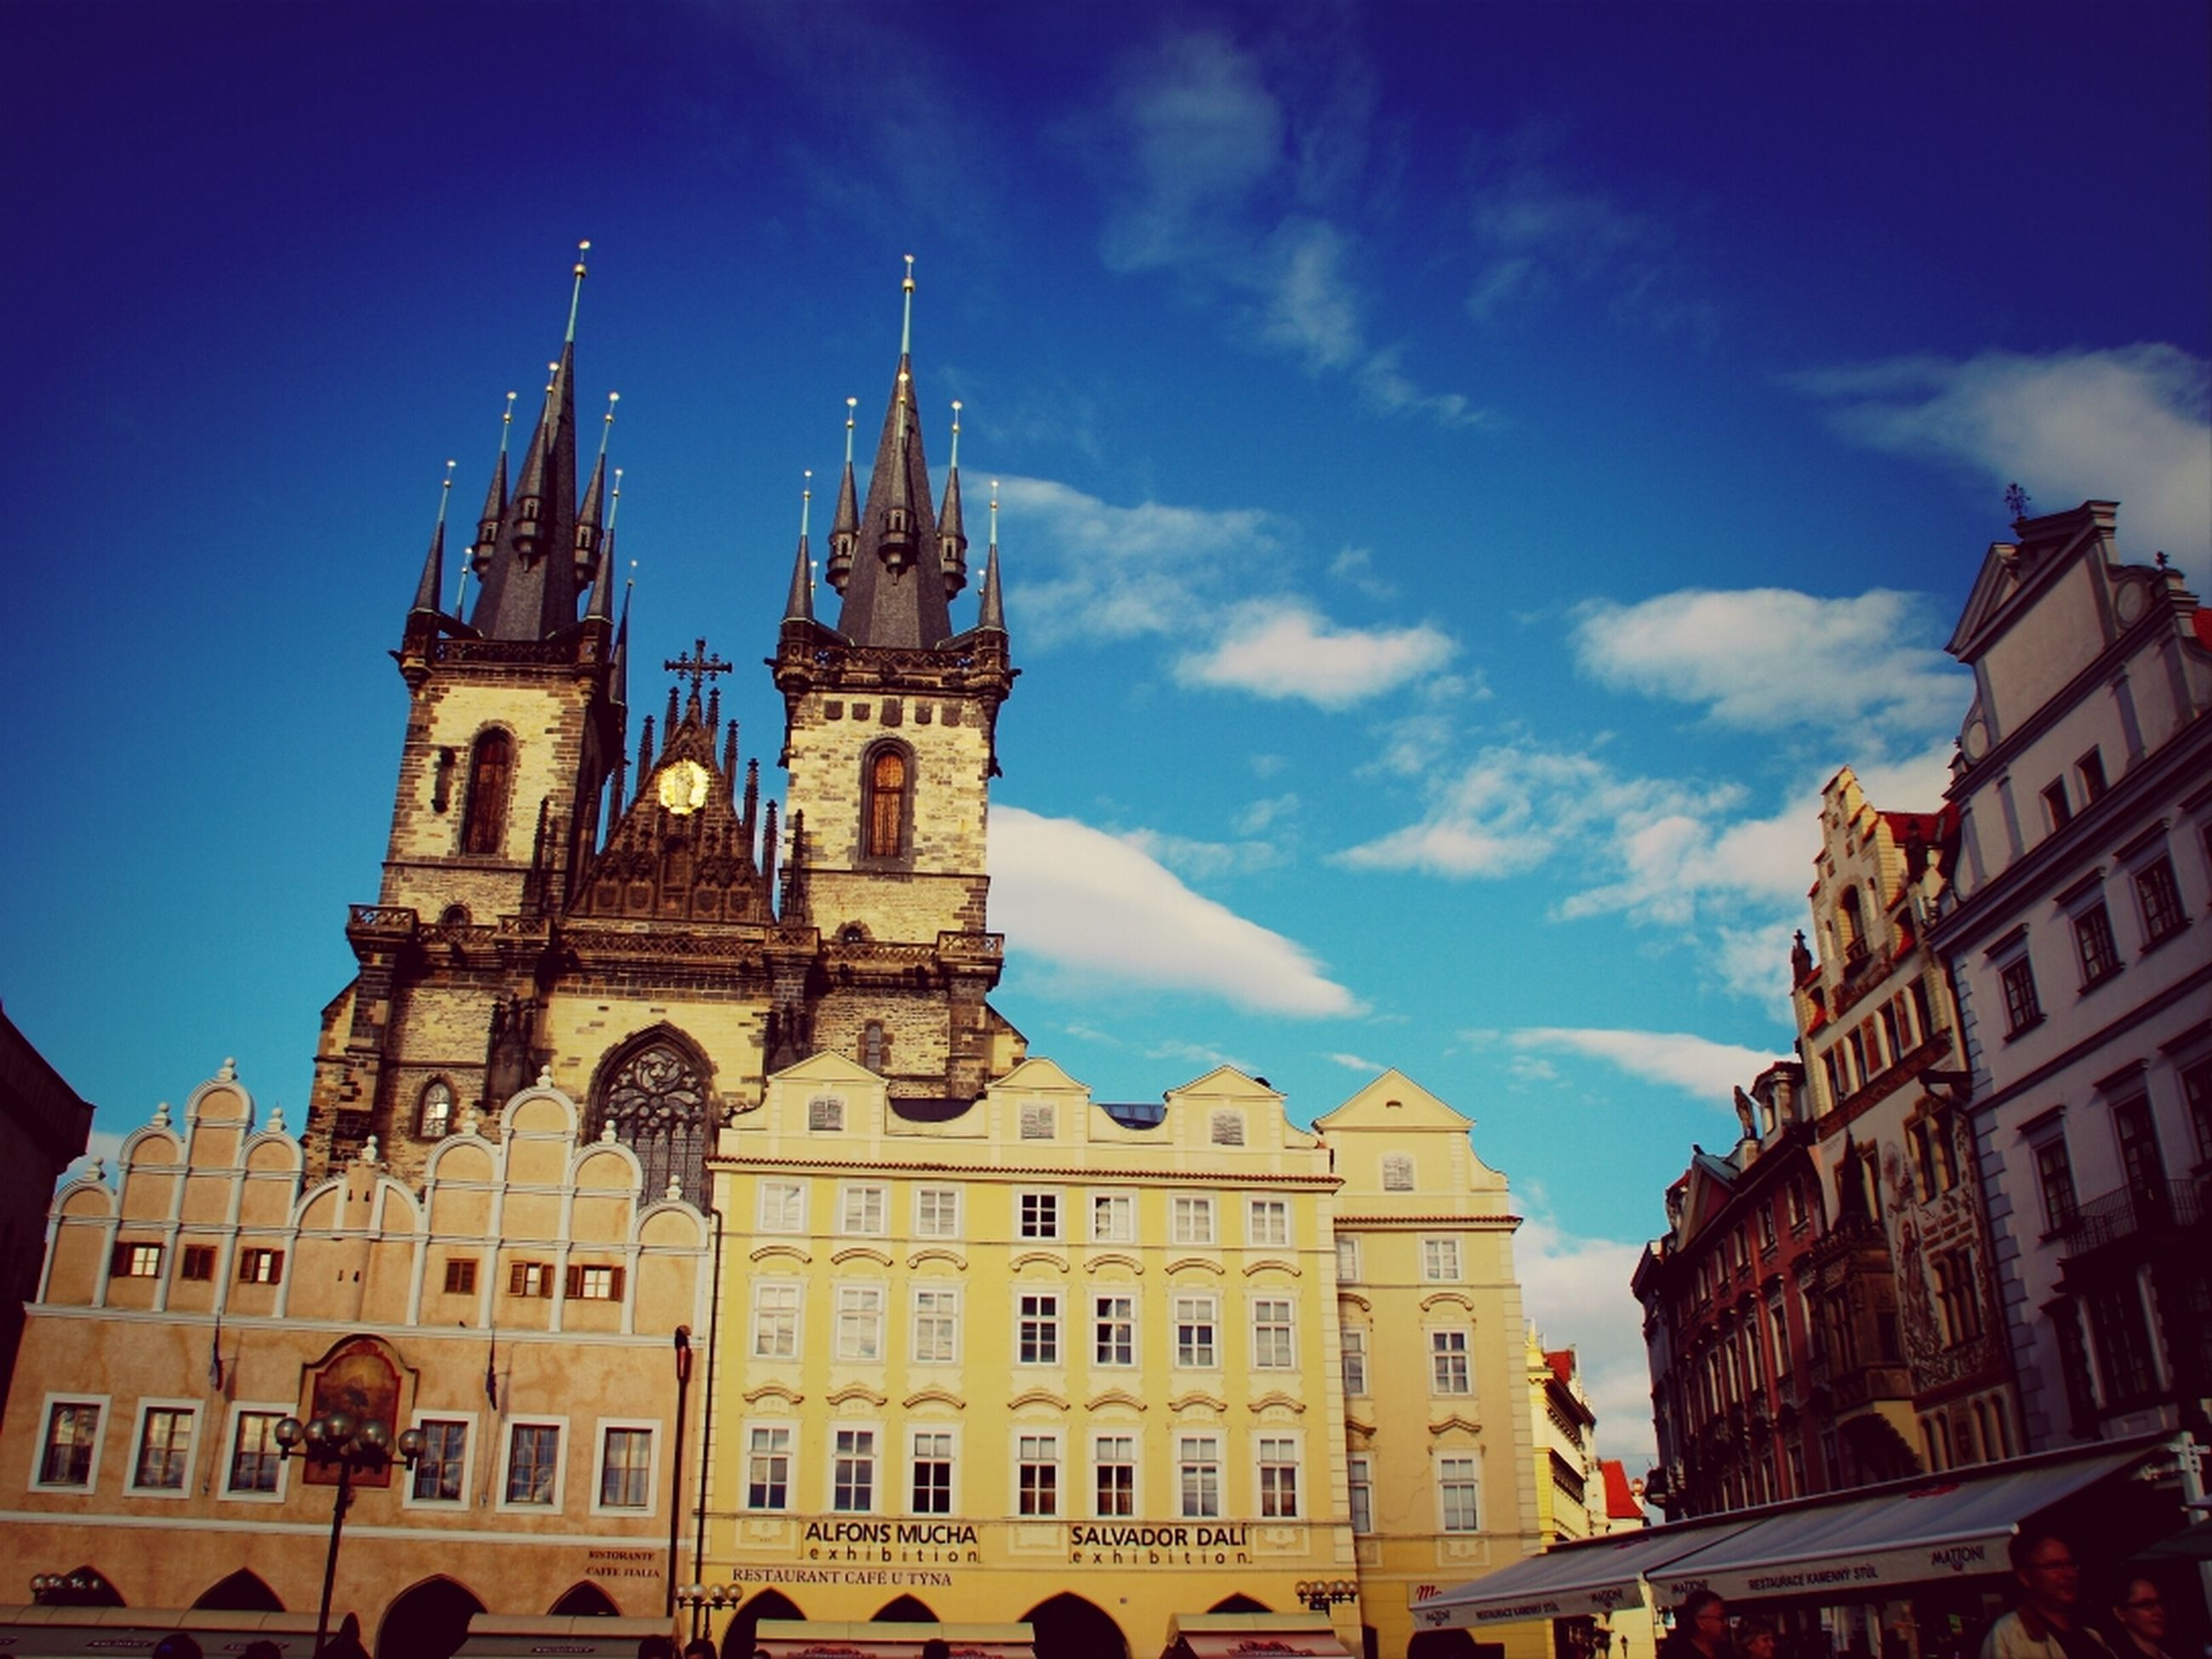 architecture, building exterior, built structure, sky, city, low angle view, travel destinations, facade, history, church, travel, famous place, incidental people, tourism, religion, place of worship, blue, old town, cathedral